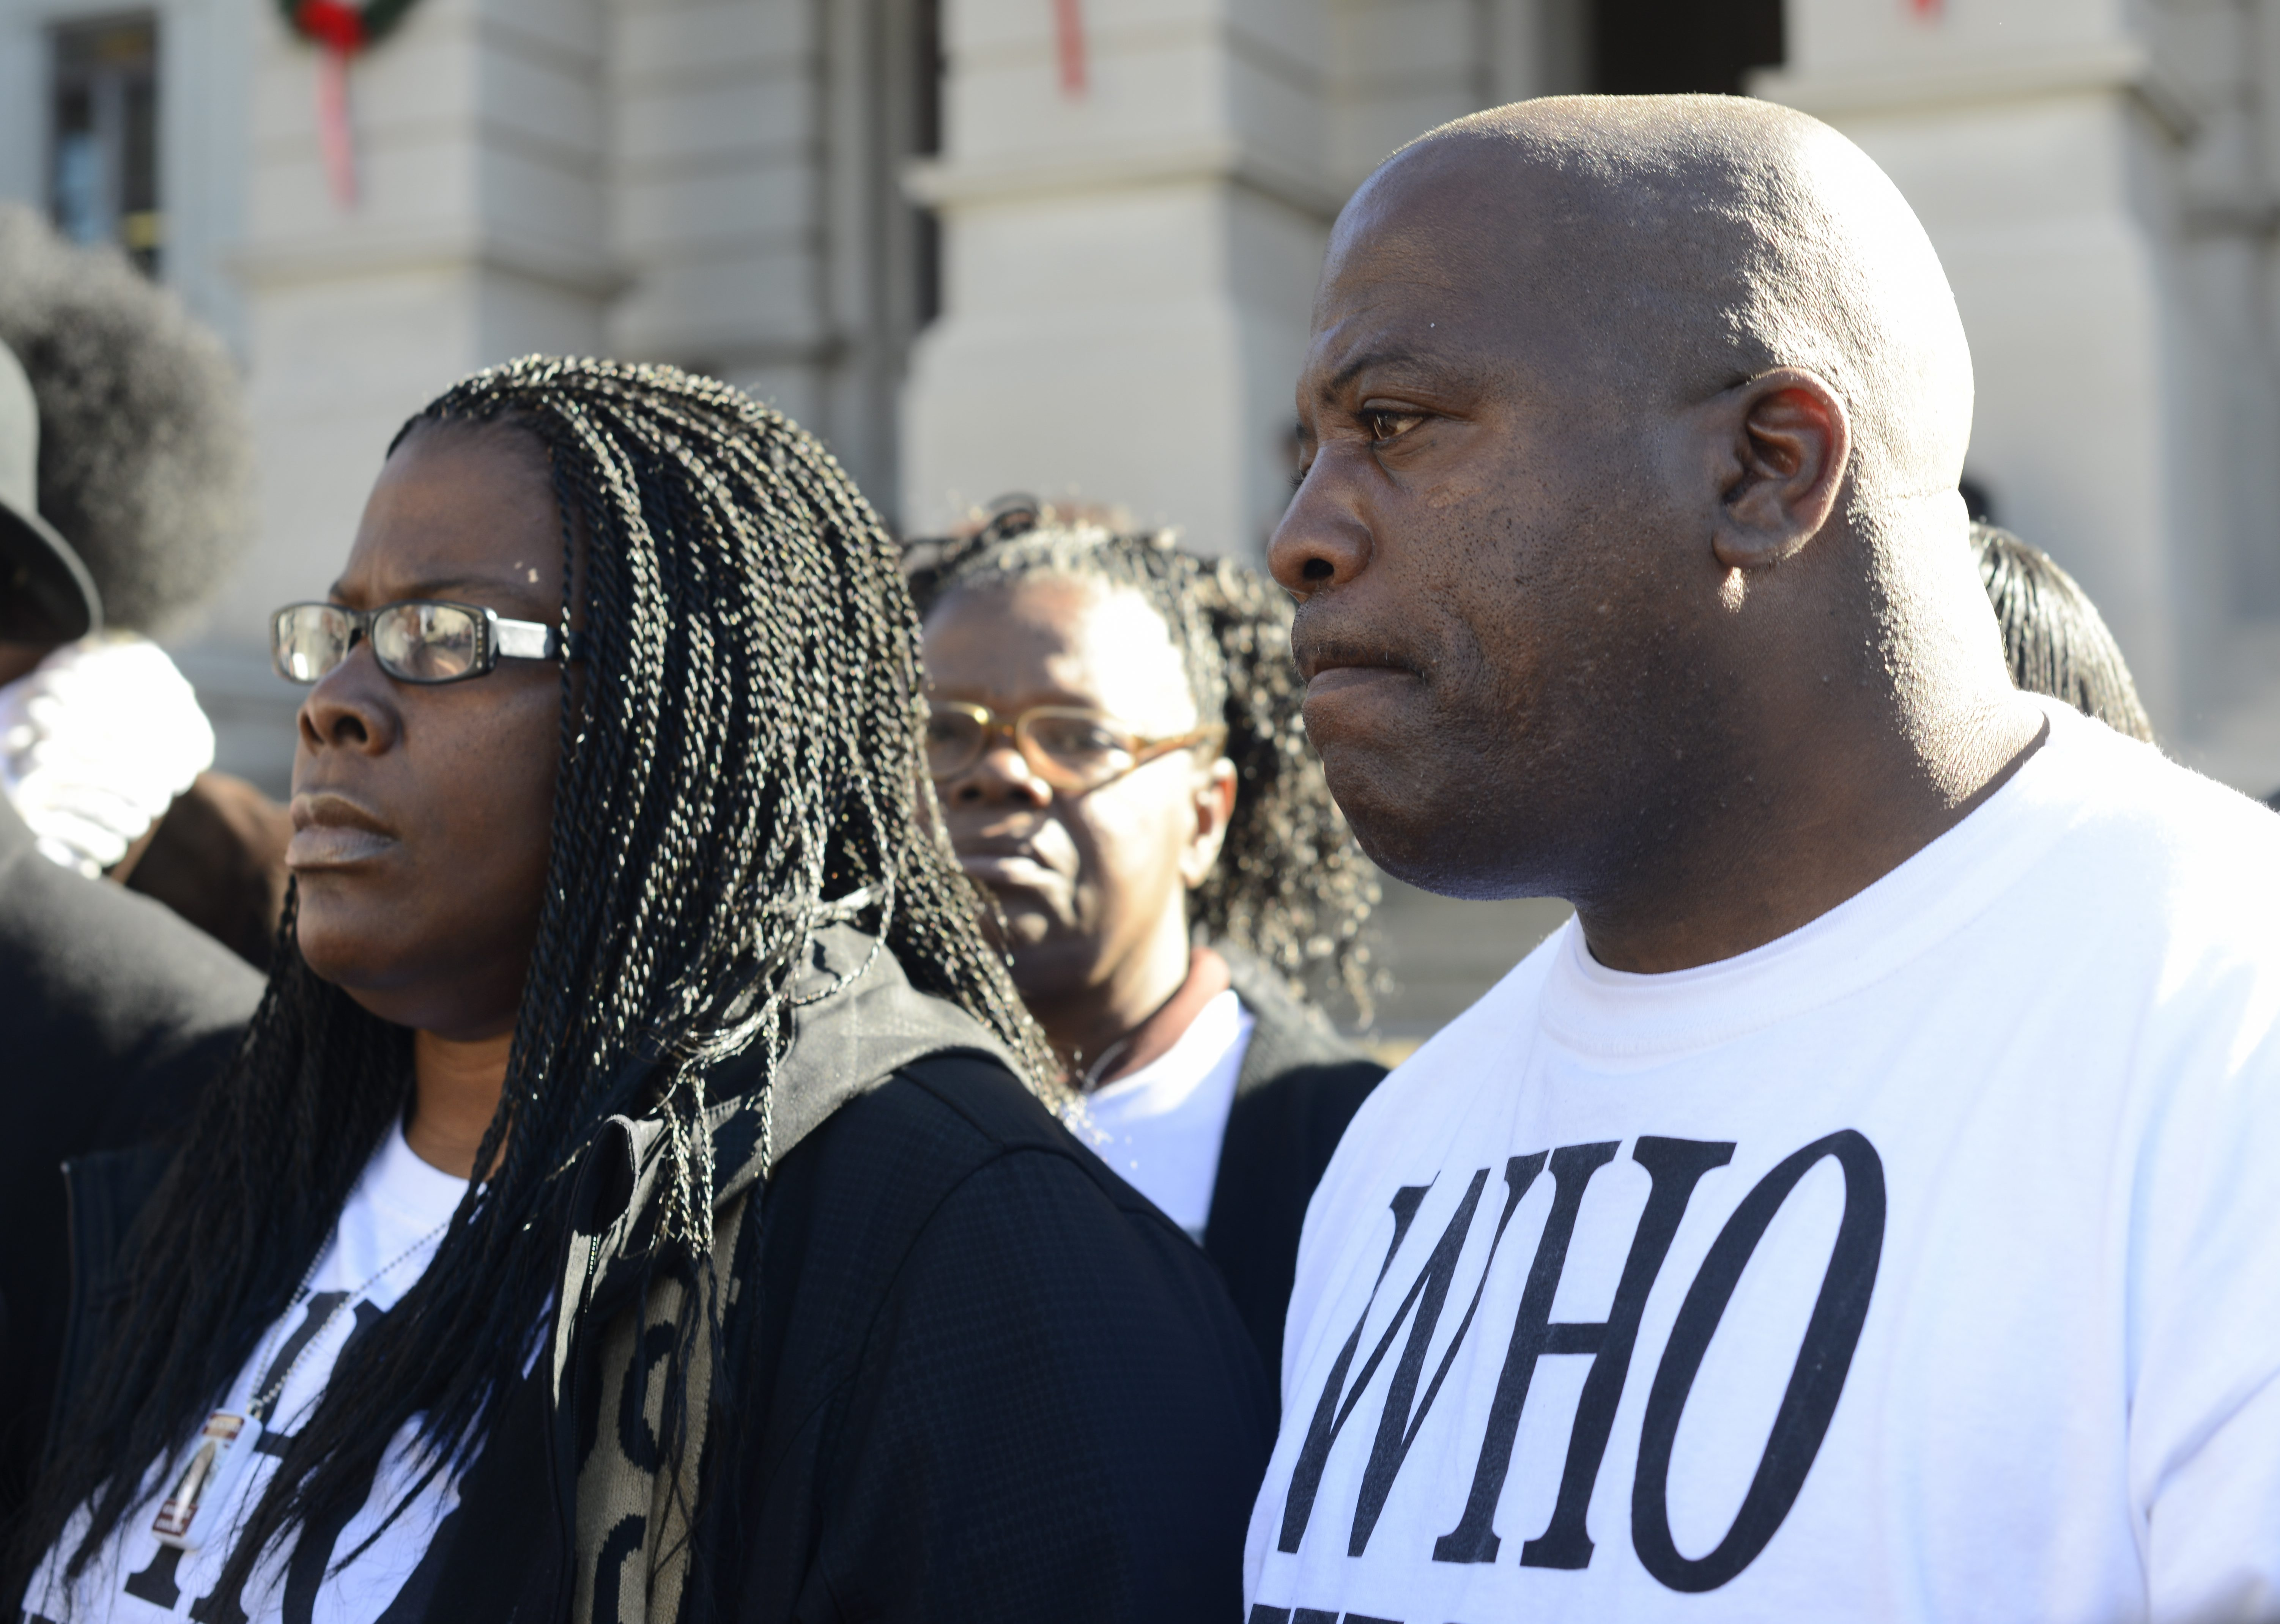 Jacqueline Johnson (left) and her husband Kenneth (right) participate in a rally on behalf of their dead son Kendrick Johnson at the Georgia State Capitol in Atlanta on  Dec. 11, 2013.